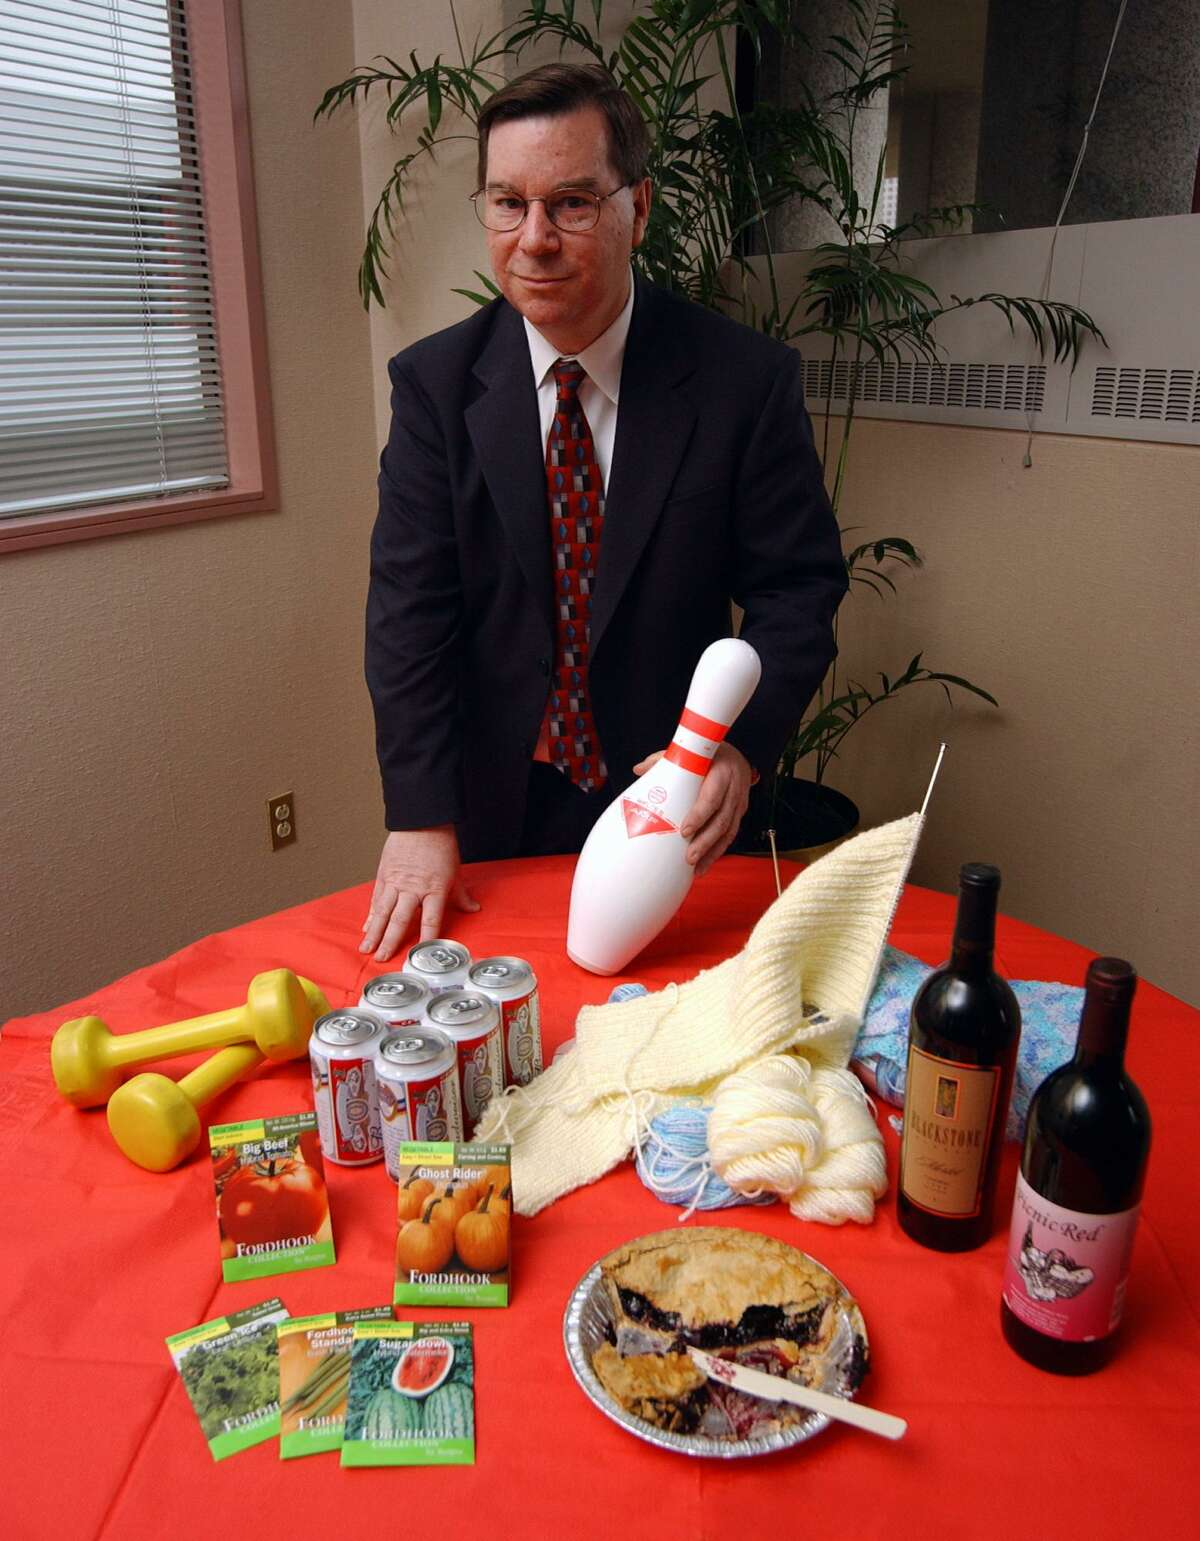 In 2002, then-House Minority Leader Robert Ward stood with items that Republicans claimed that Democrats wanted to raise taxes on, including beer, wine, knitting wool, seeds, pie, gym memberships and bowling.